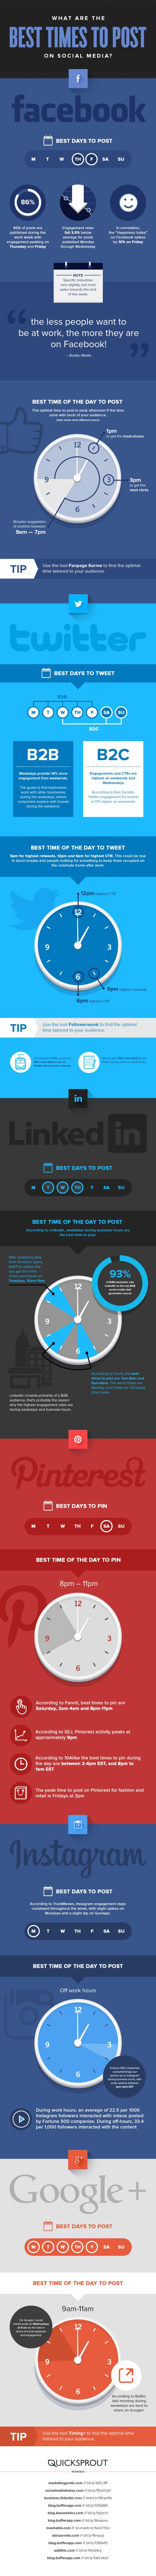 What Are The Best Times to Post on Social Media